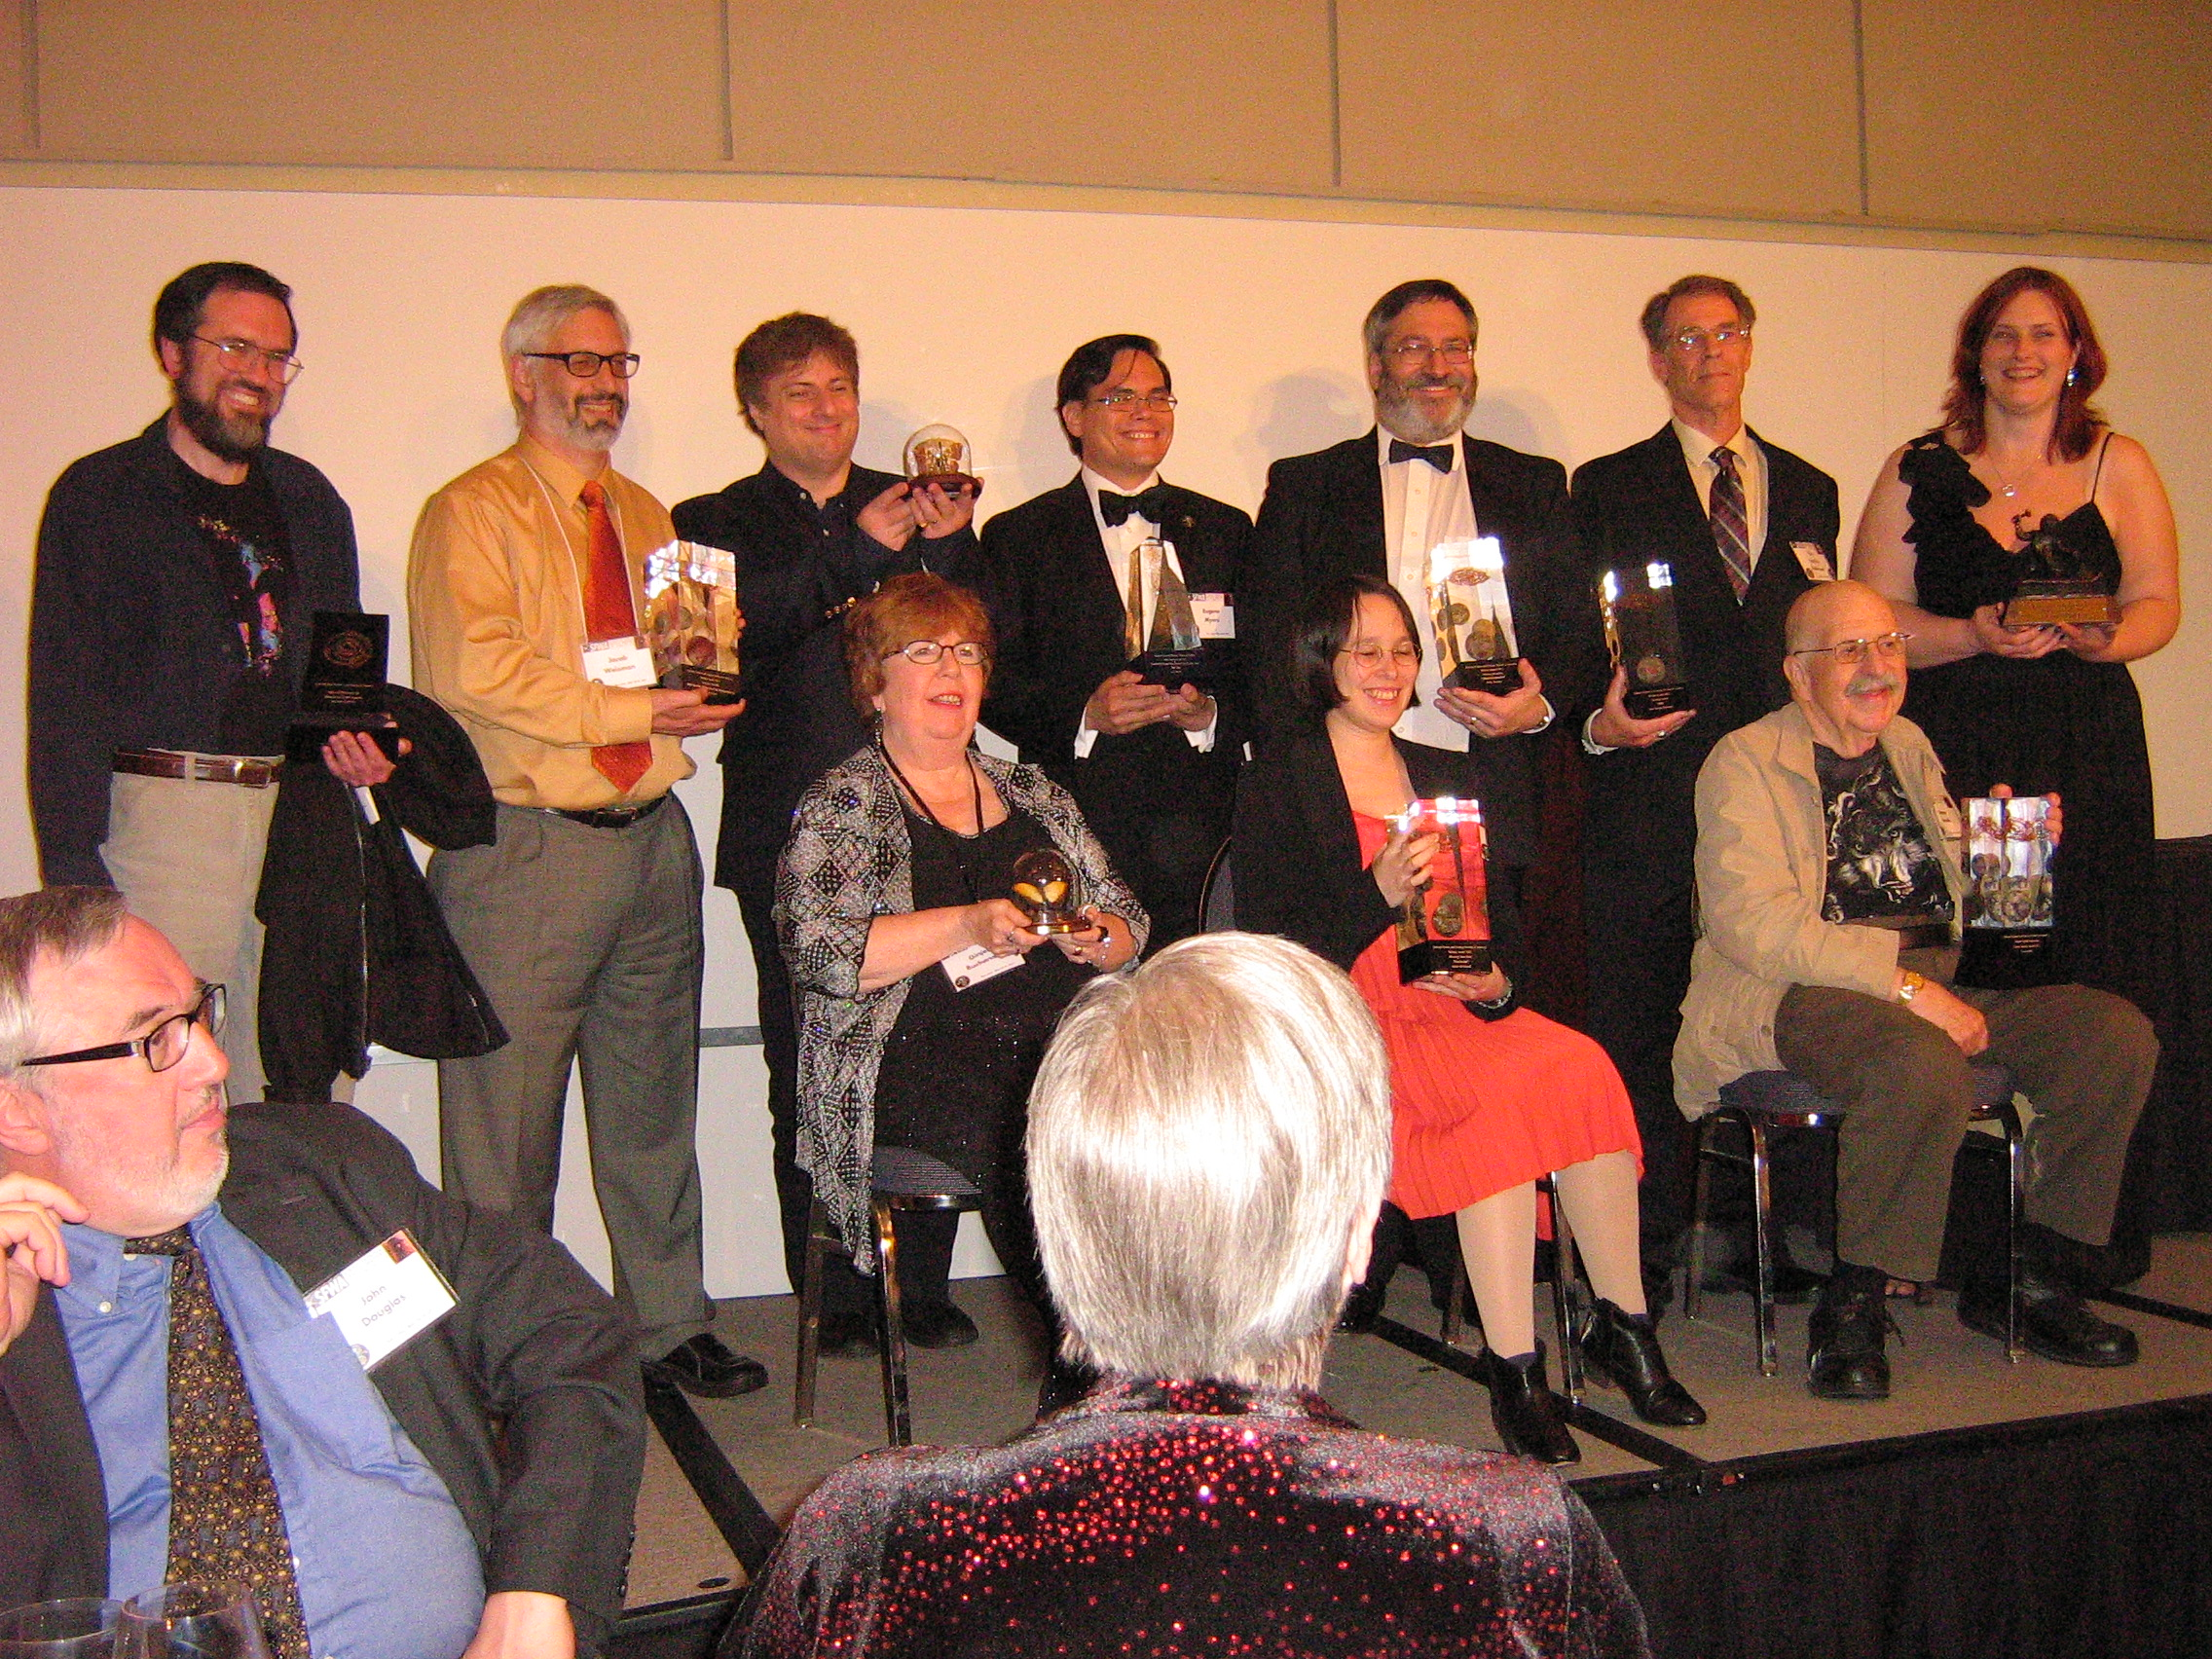 Nebula Award Winners holding awards - photo by Carrie S